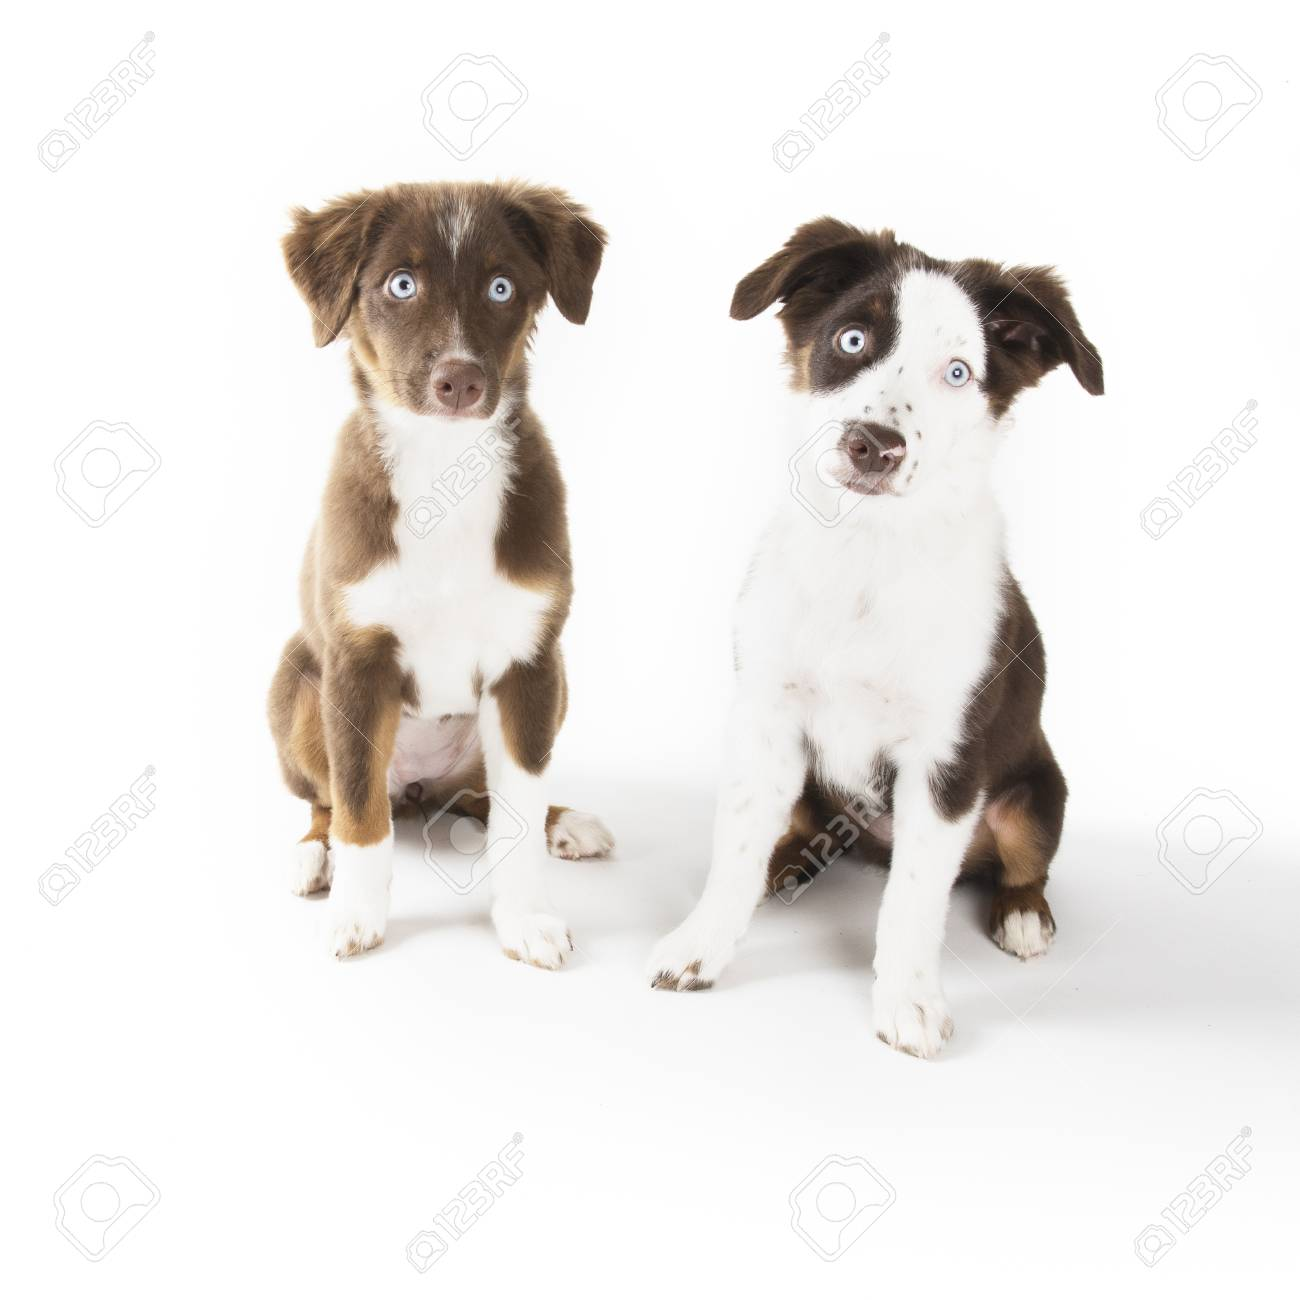 Two Cute Miniature Australian Shepherd Puppies Isolated On White Stock Photo Picture And Royalty Free Image Image 114273636